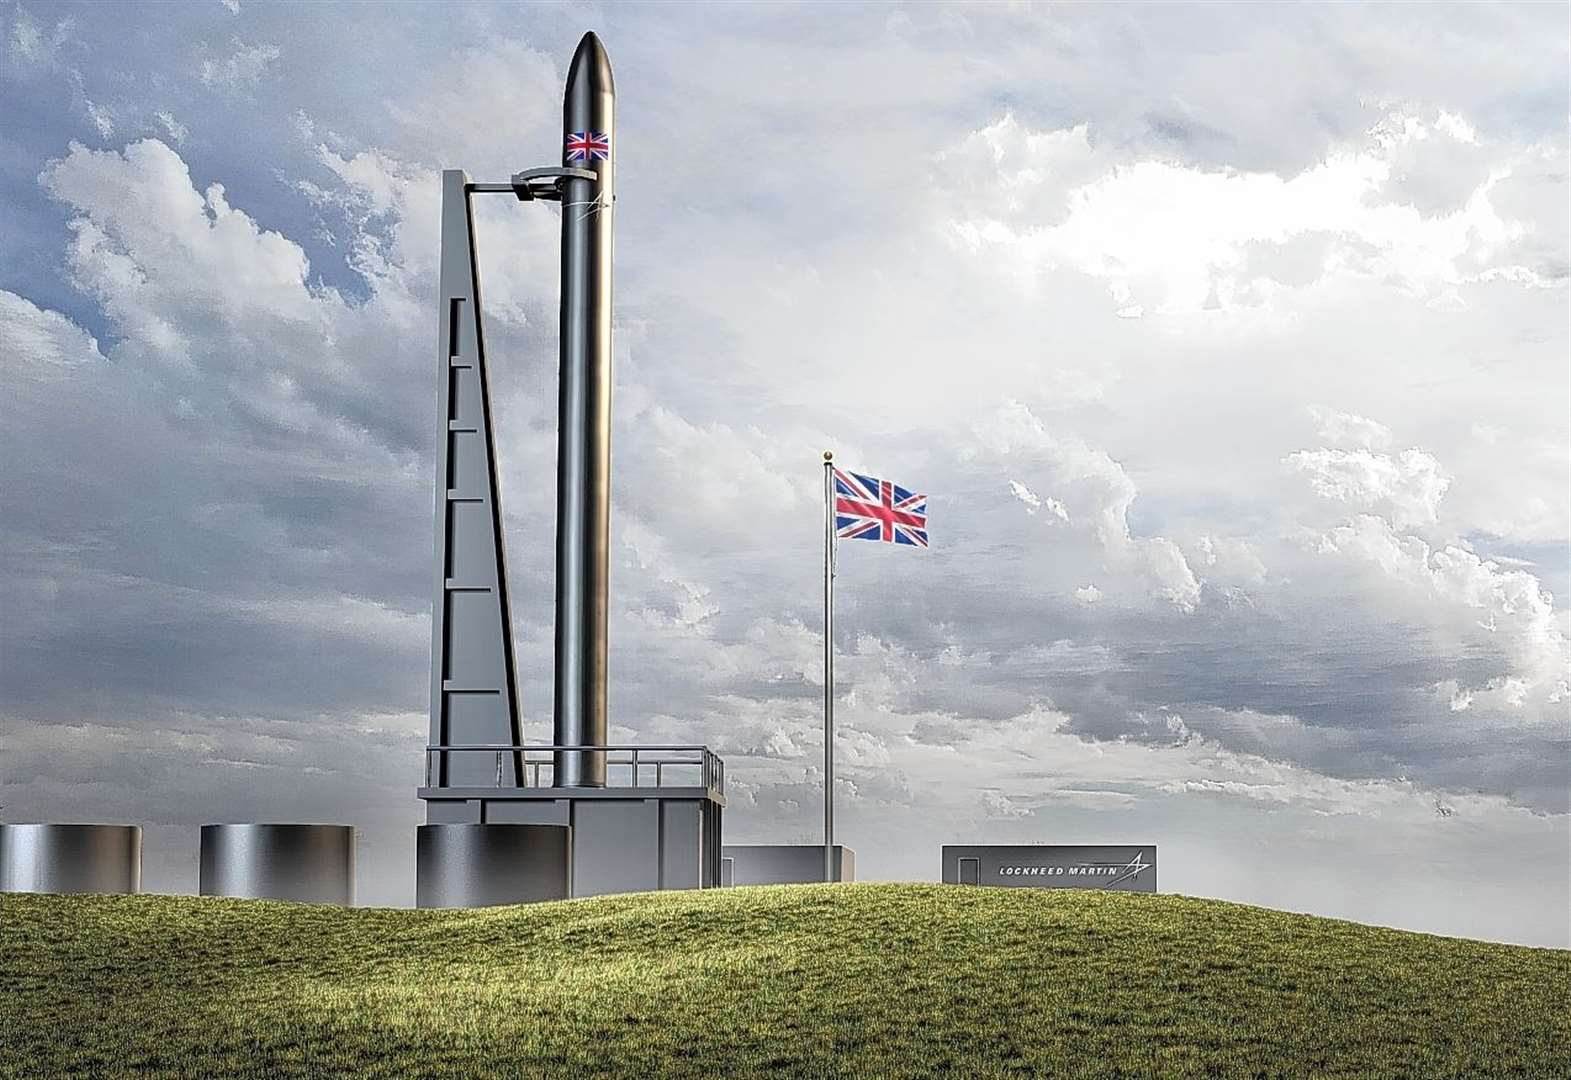 Sutherland MP and MSP make joint submission in favour of spaceport plan